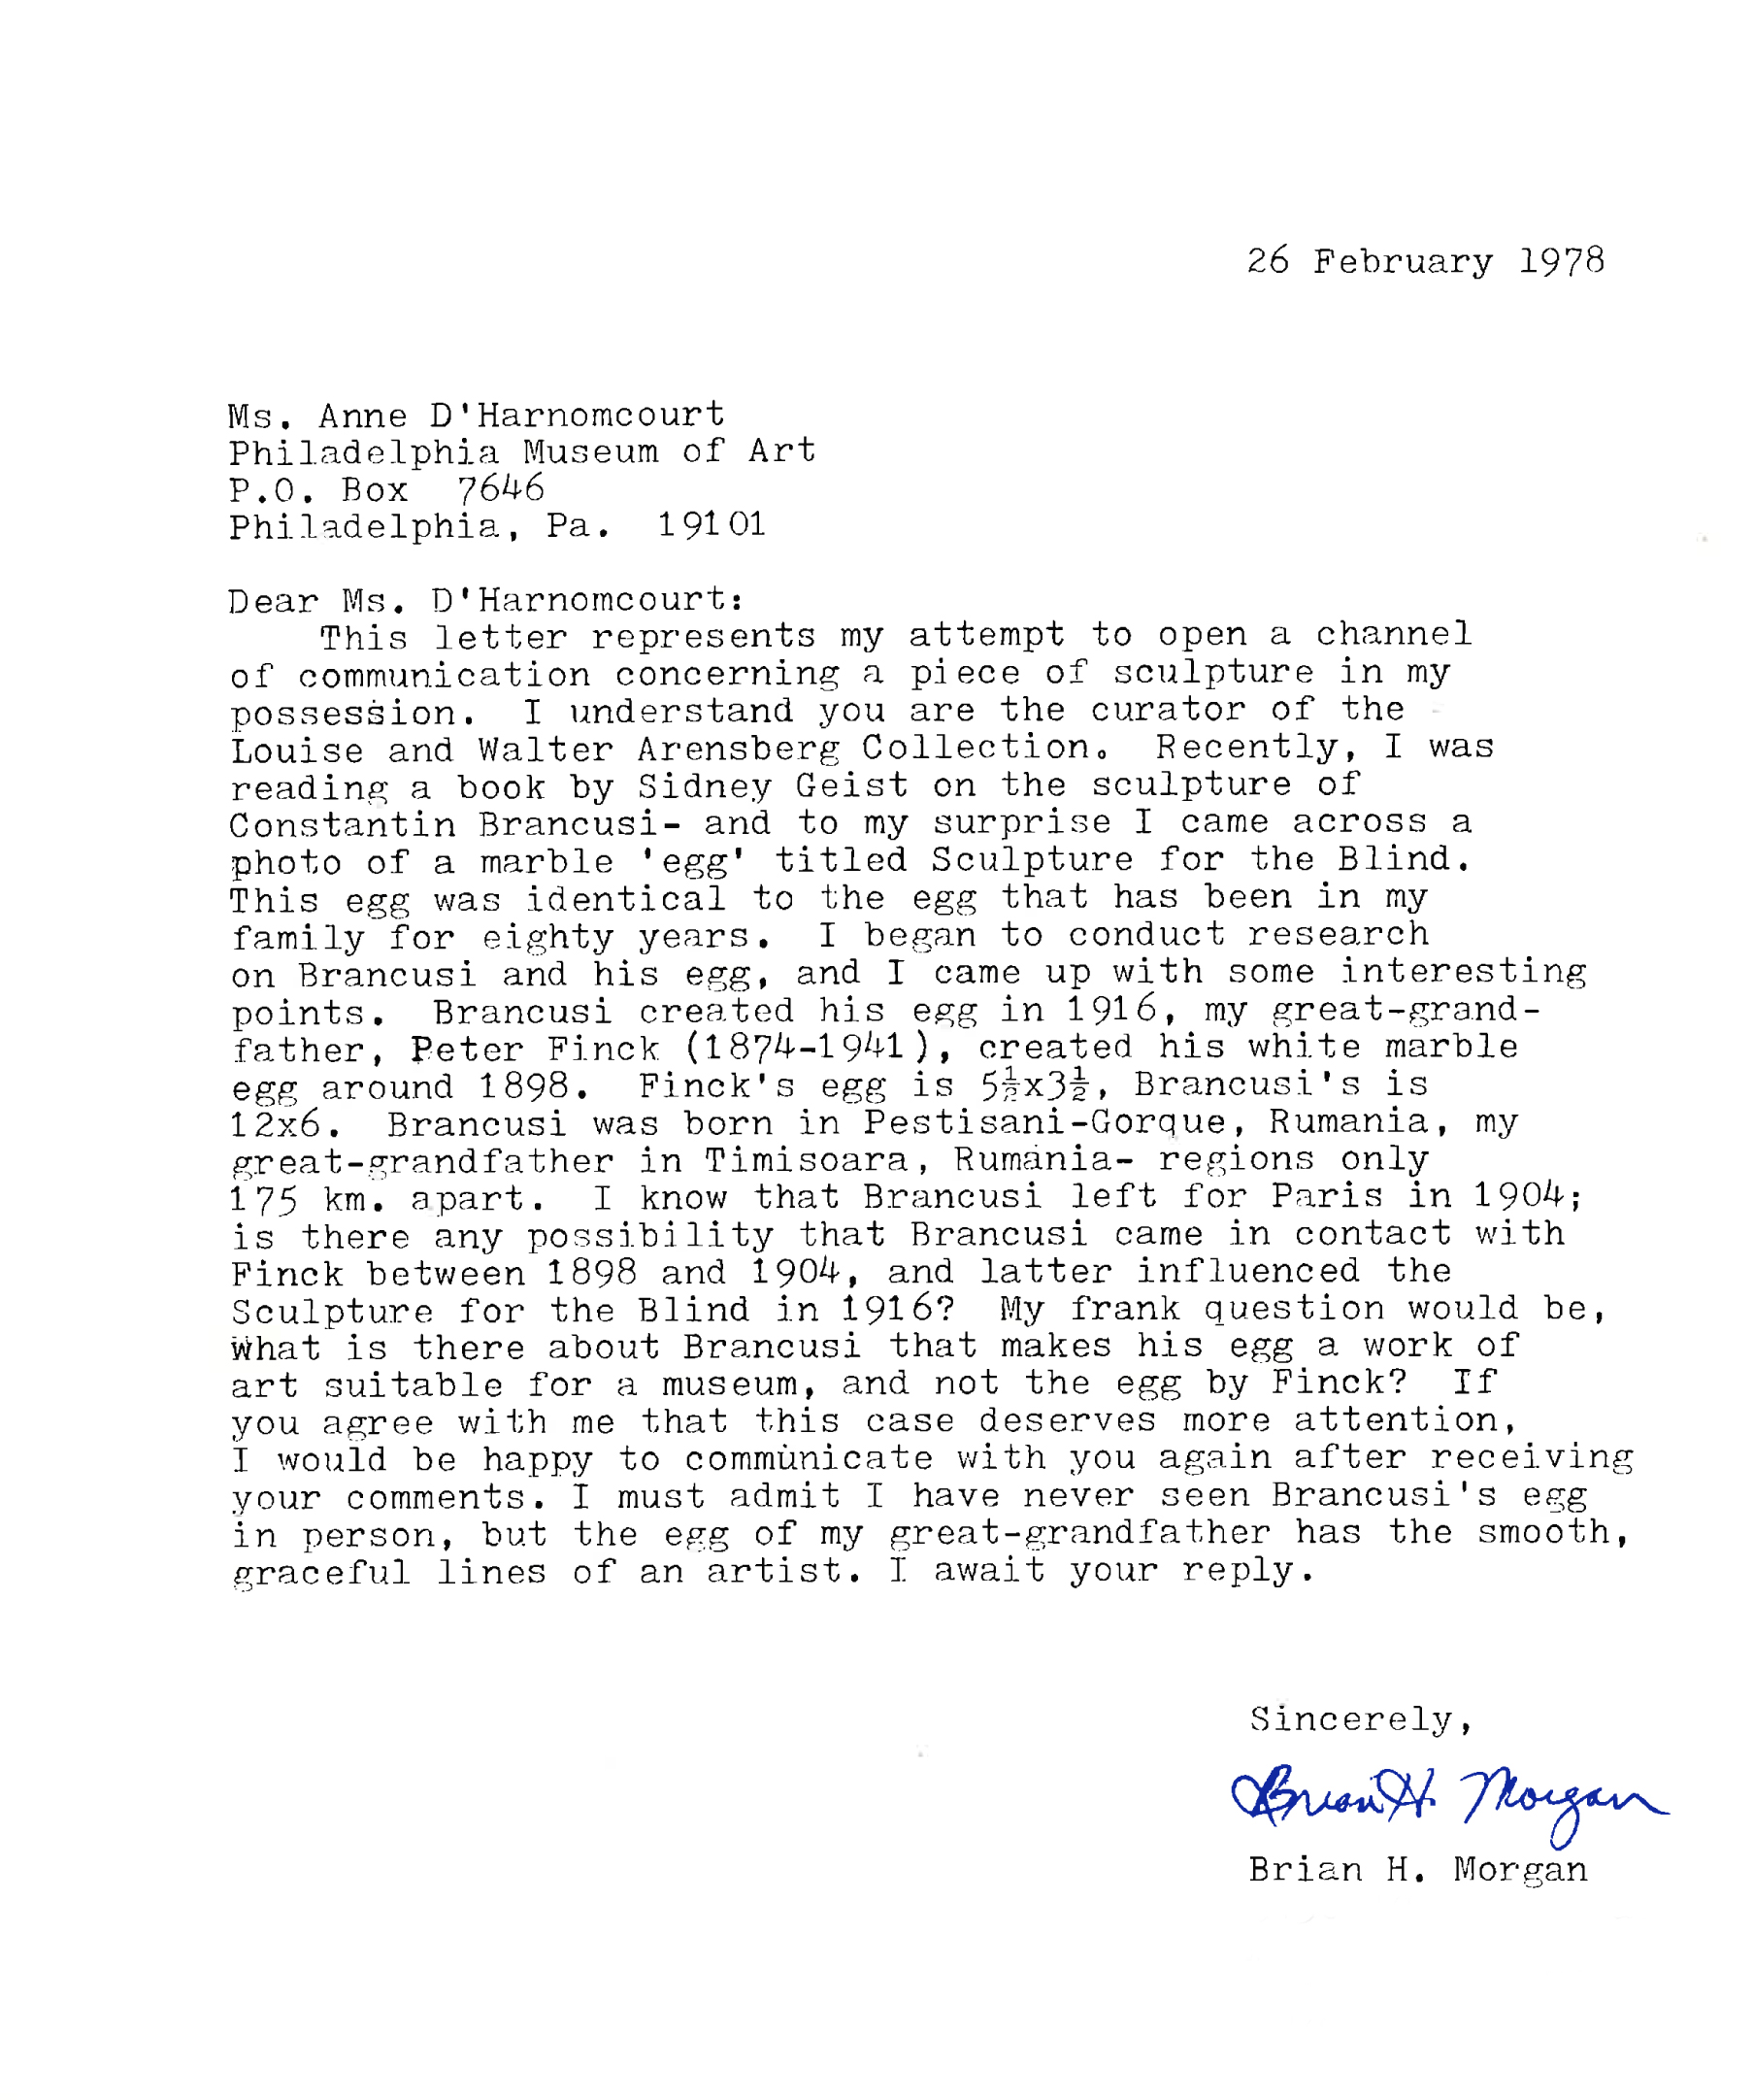 Original Letter from Brian H. Morgan to Anne D'Harnoncourt, 1978